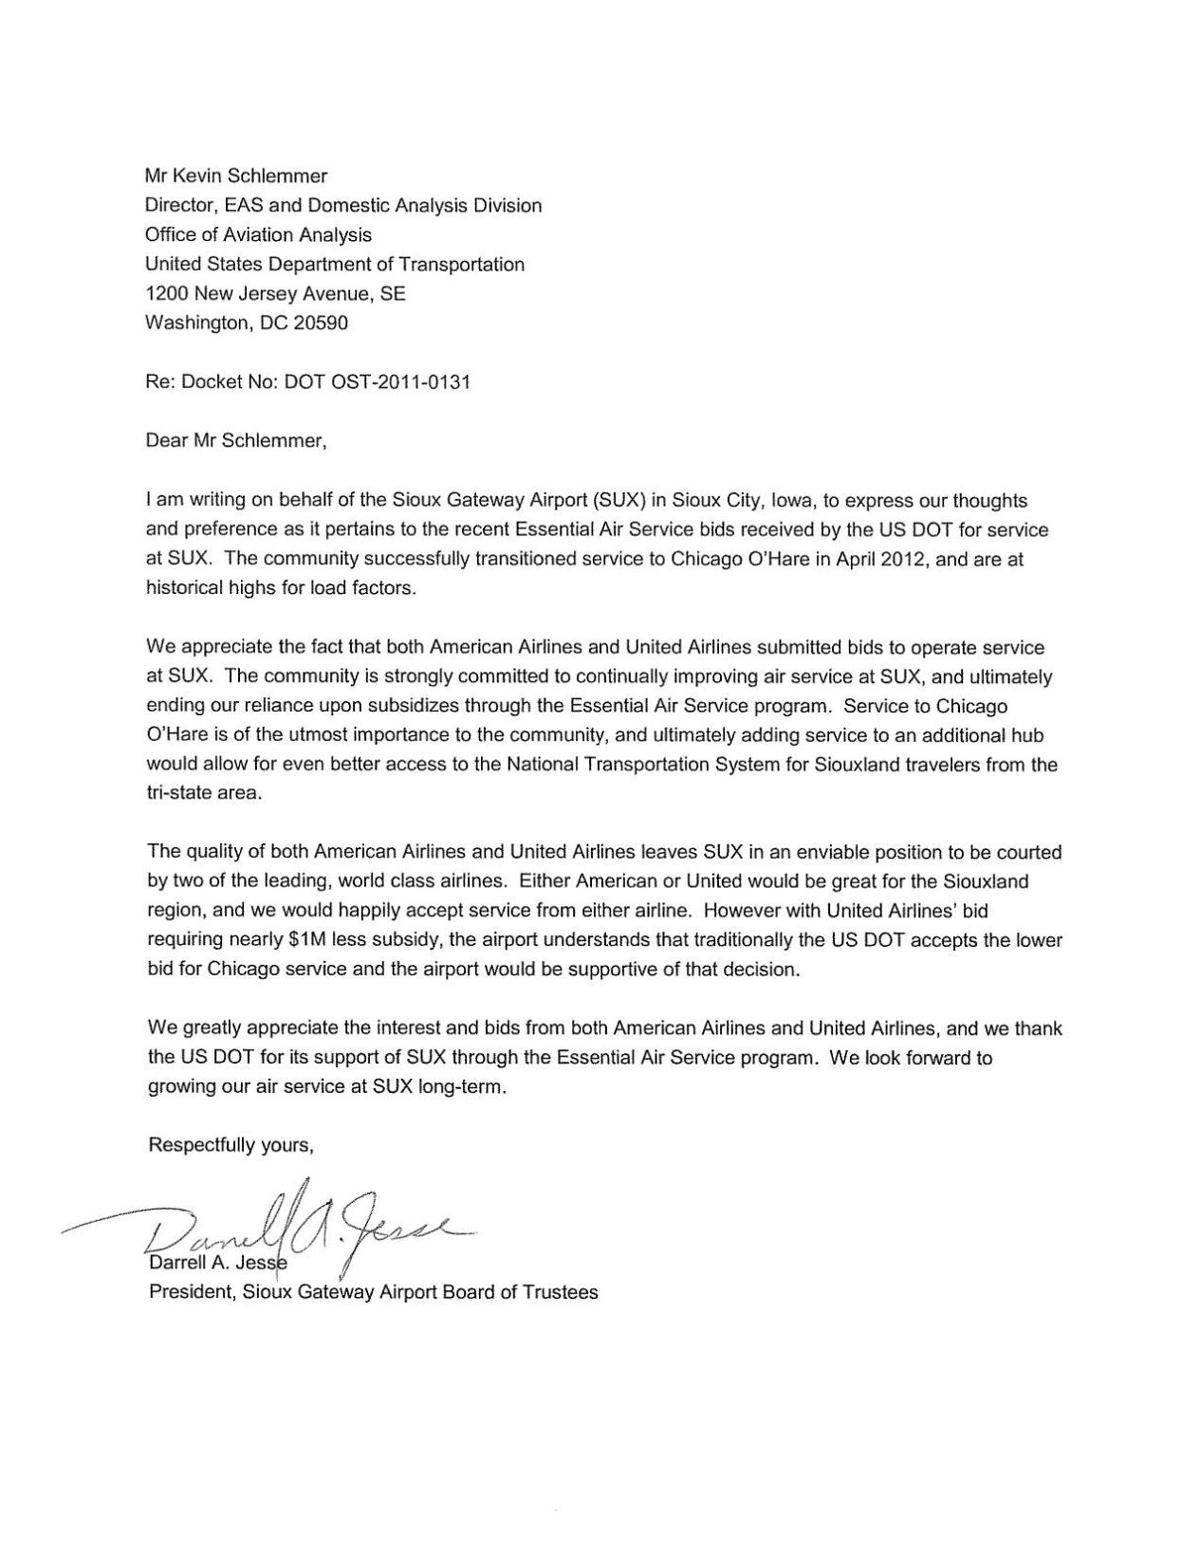 Sioux Gateway Airport Trustees Letter To U S Dot Backing United